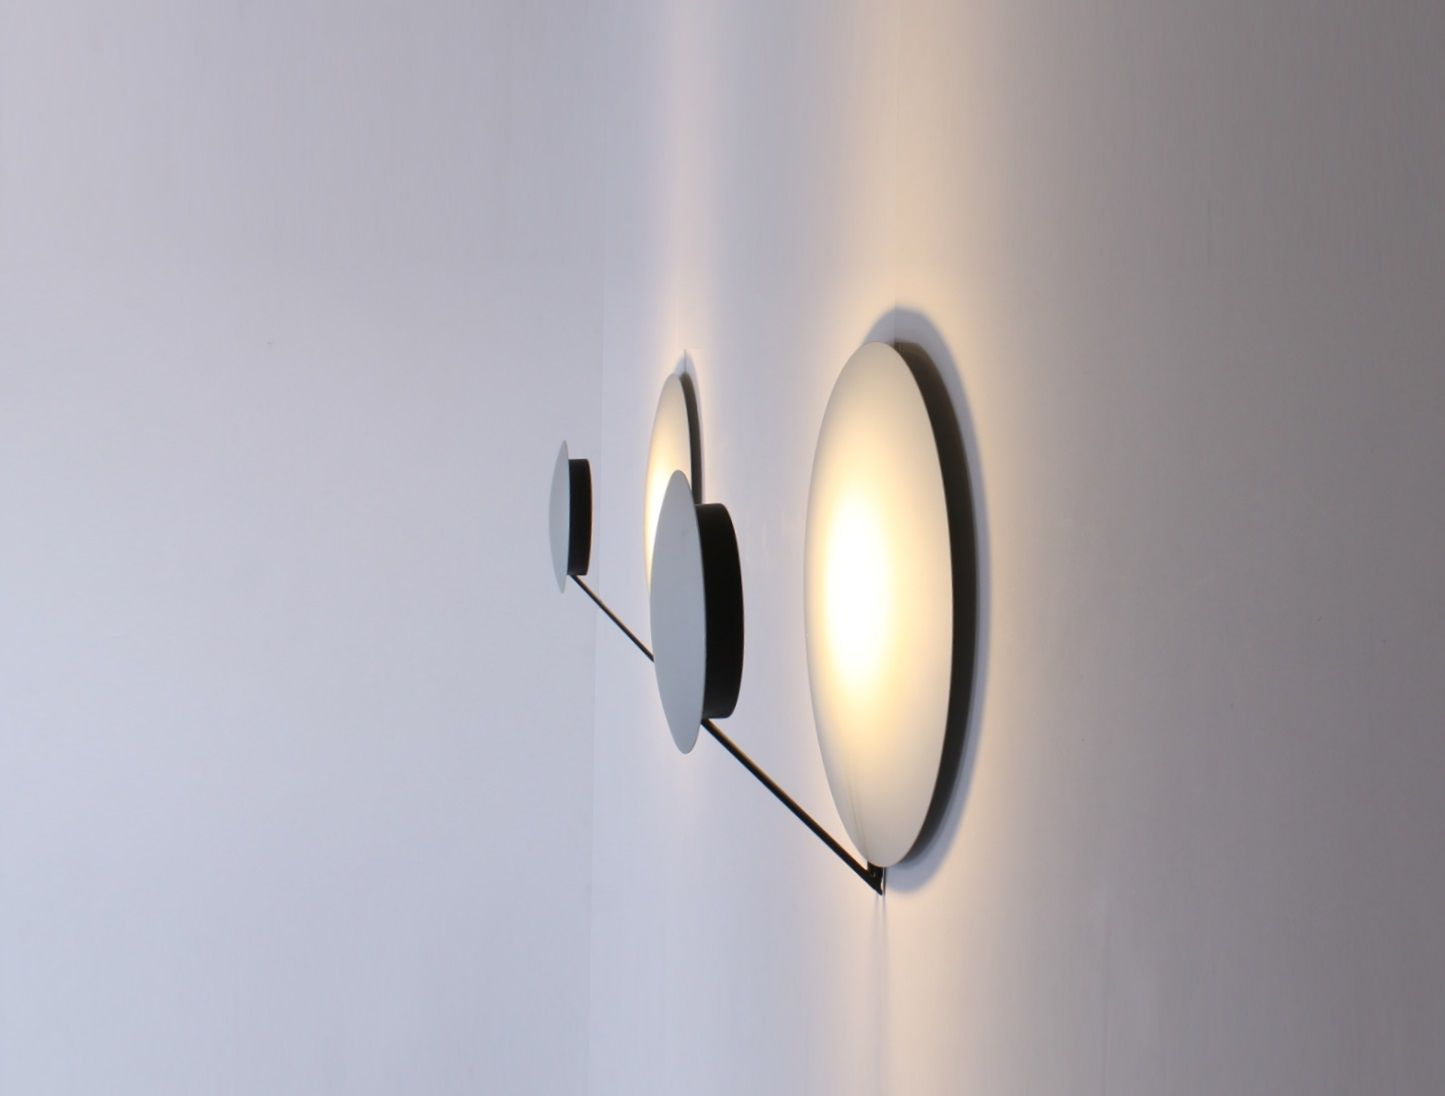 Italian Aluminium Vega Sconces by Cesaro & Amico for Tre Ci Luce ...